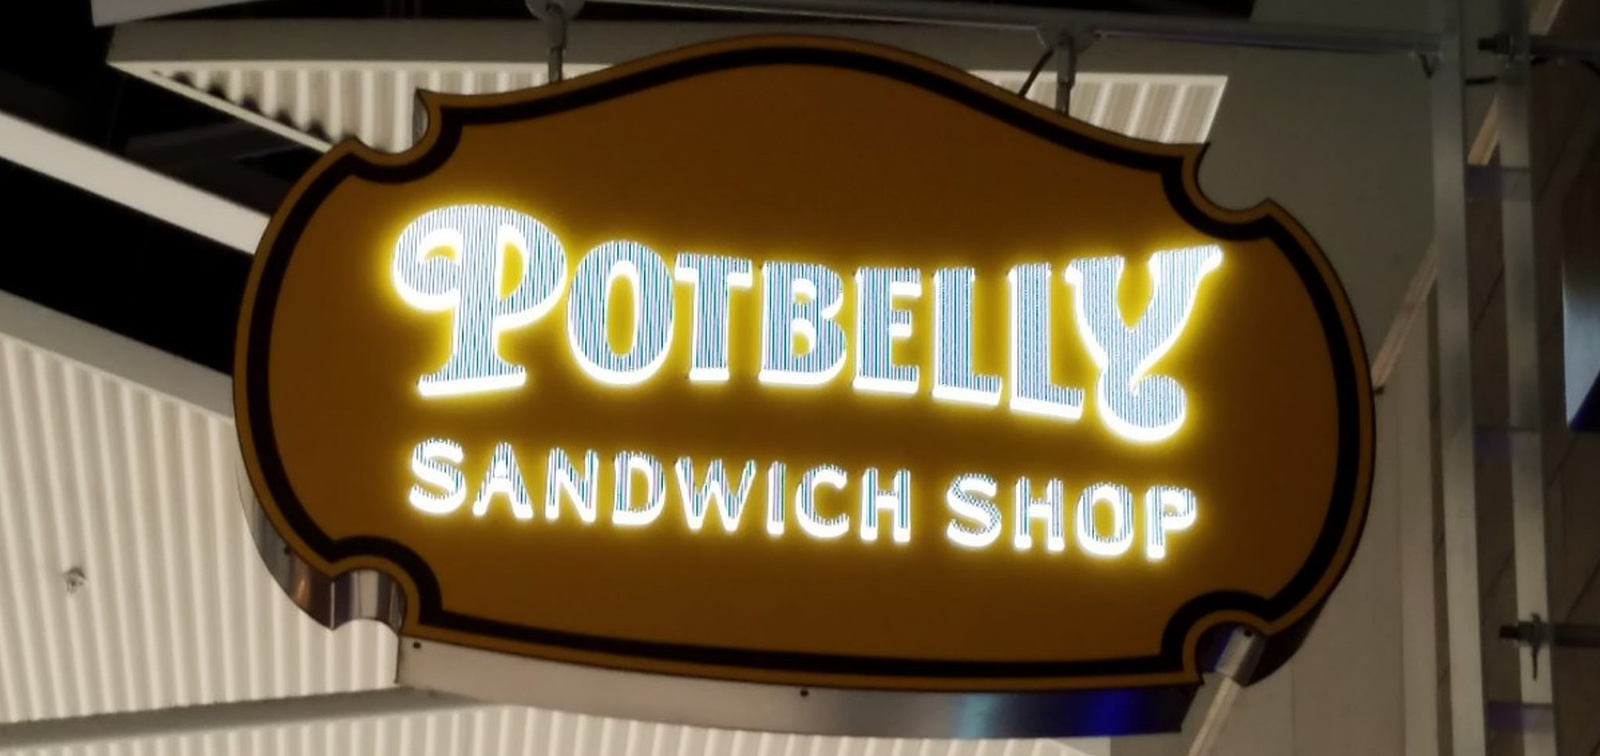 Potbelly's financial woes deepen after saying it may not meet debt obligations